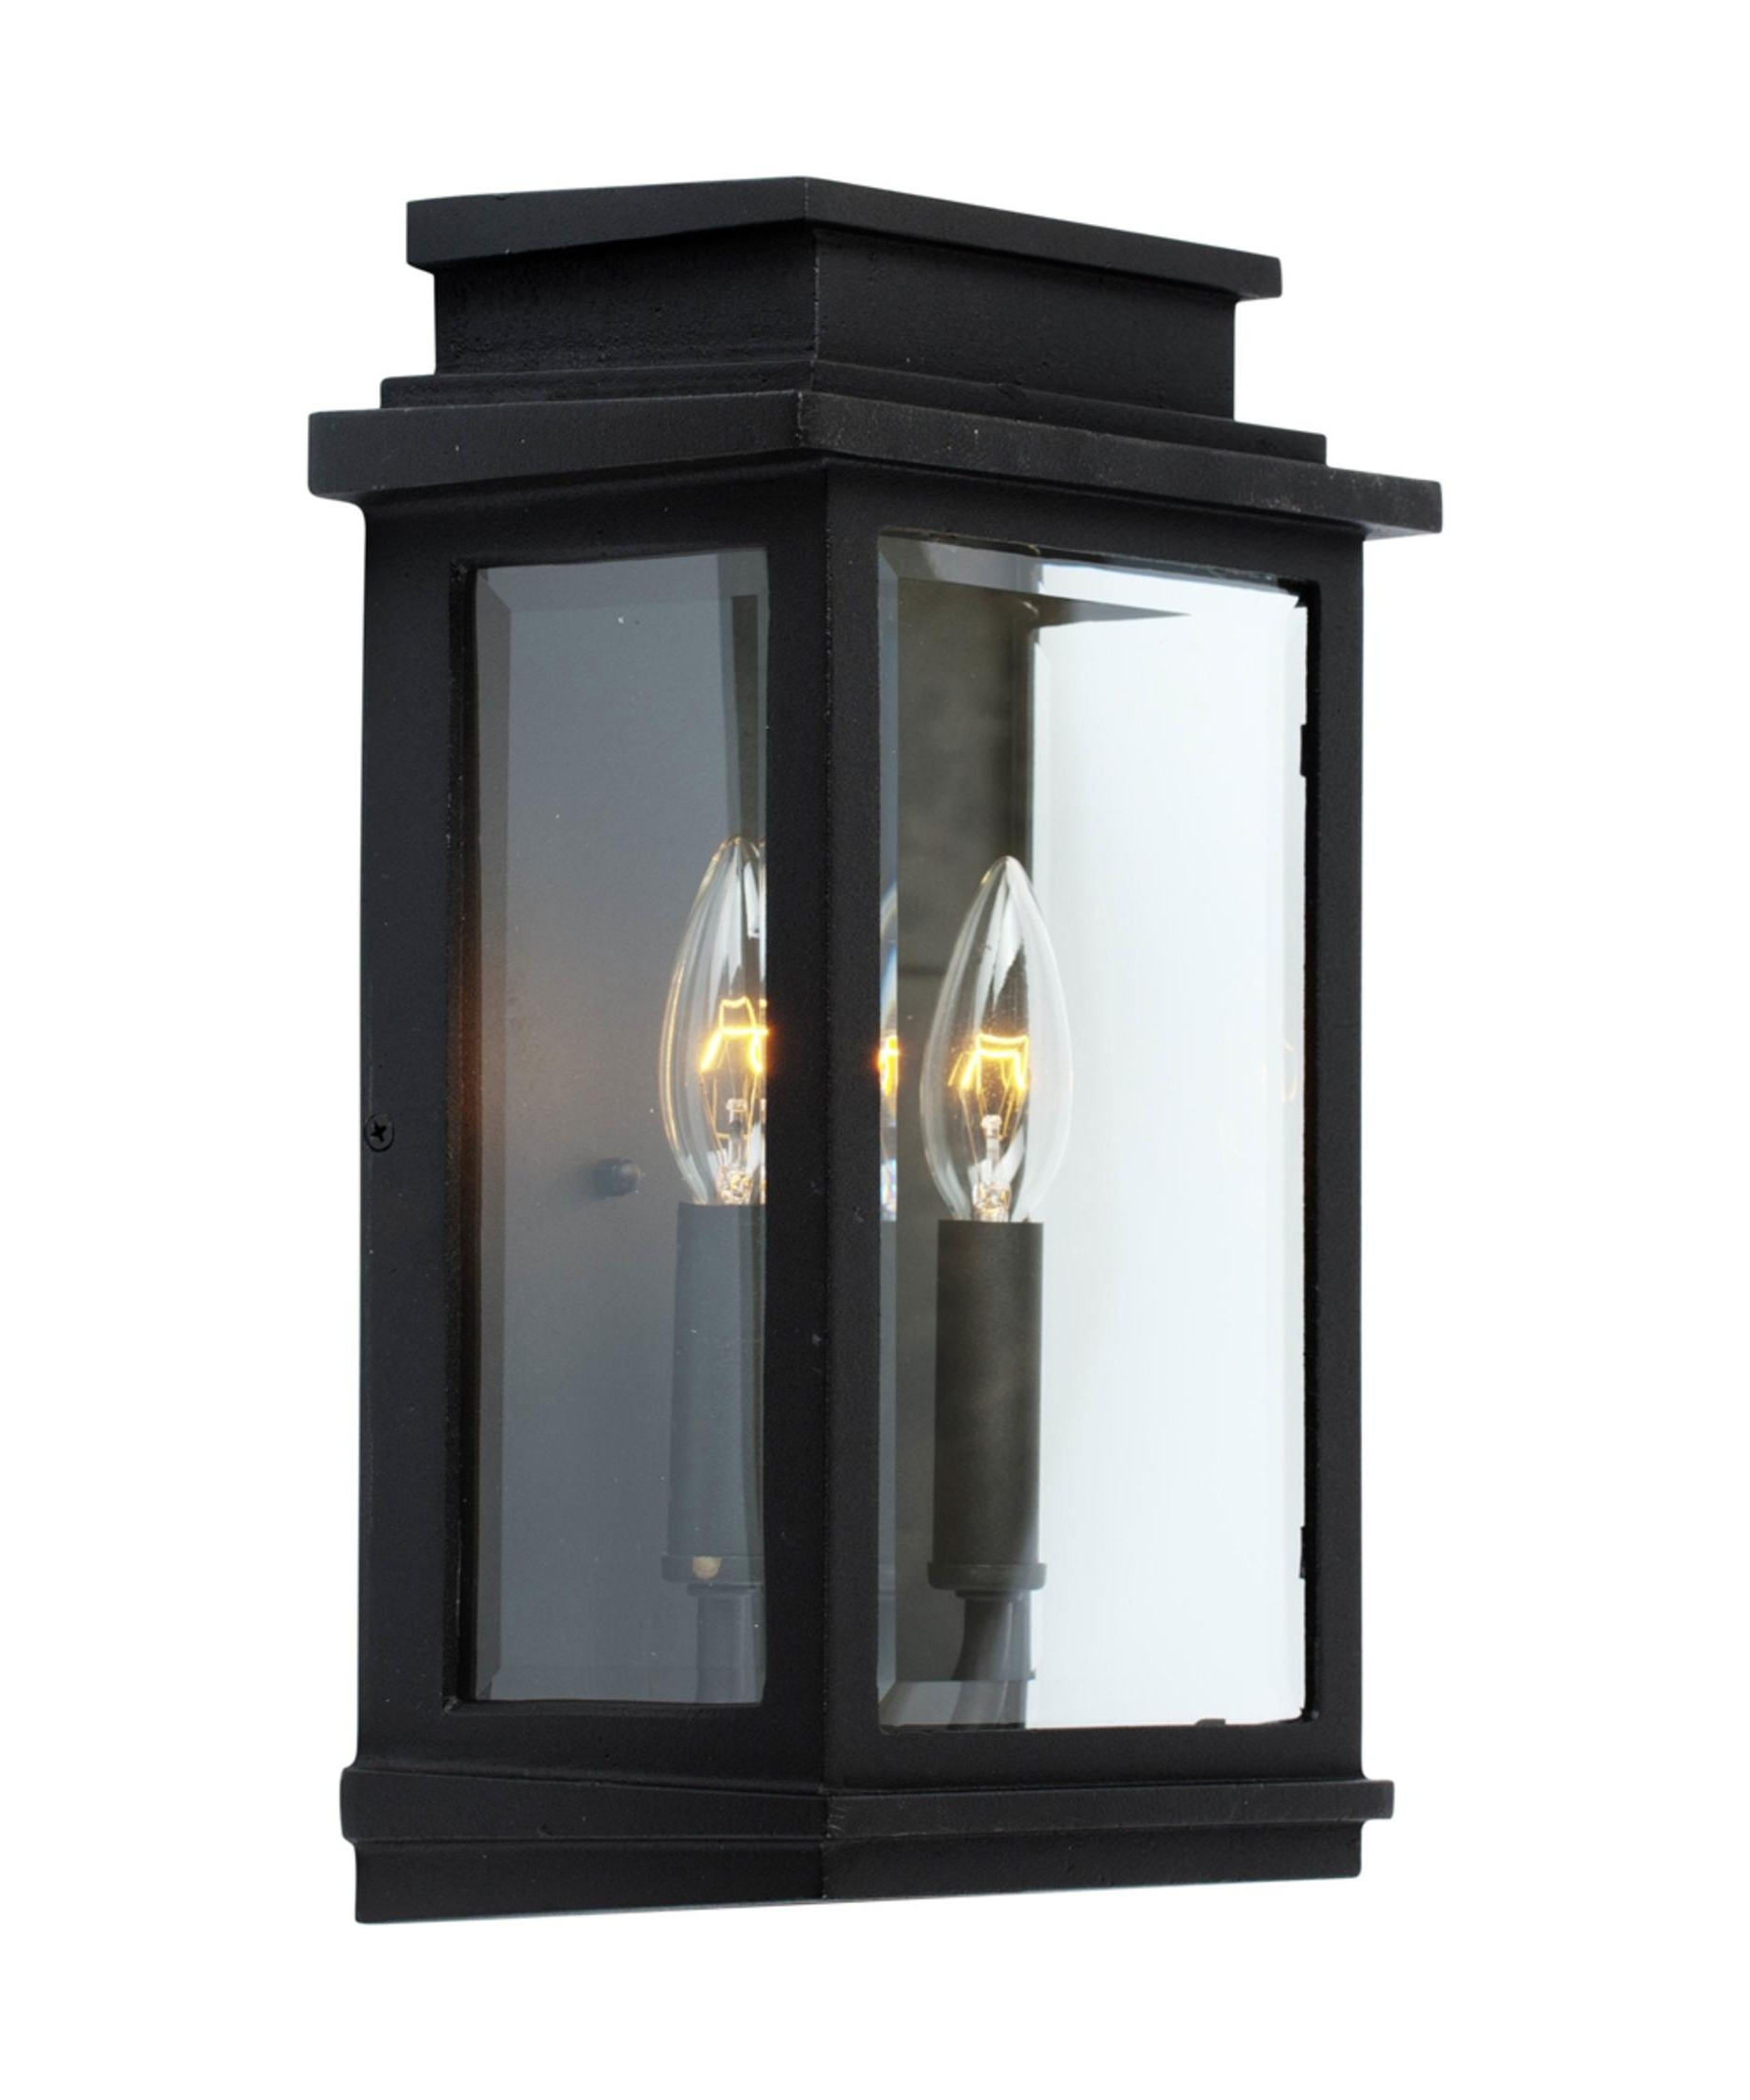 Latest Outdoor Wall Lights In Black Inside Artcraft Ac8391 Fremont 9 Inch Wide 2 Light Outdoor Wall Light (View 10 of 20)